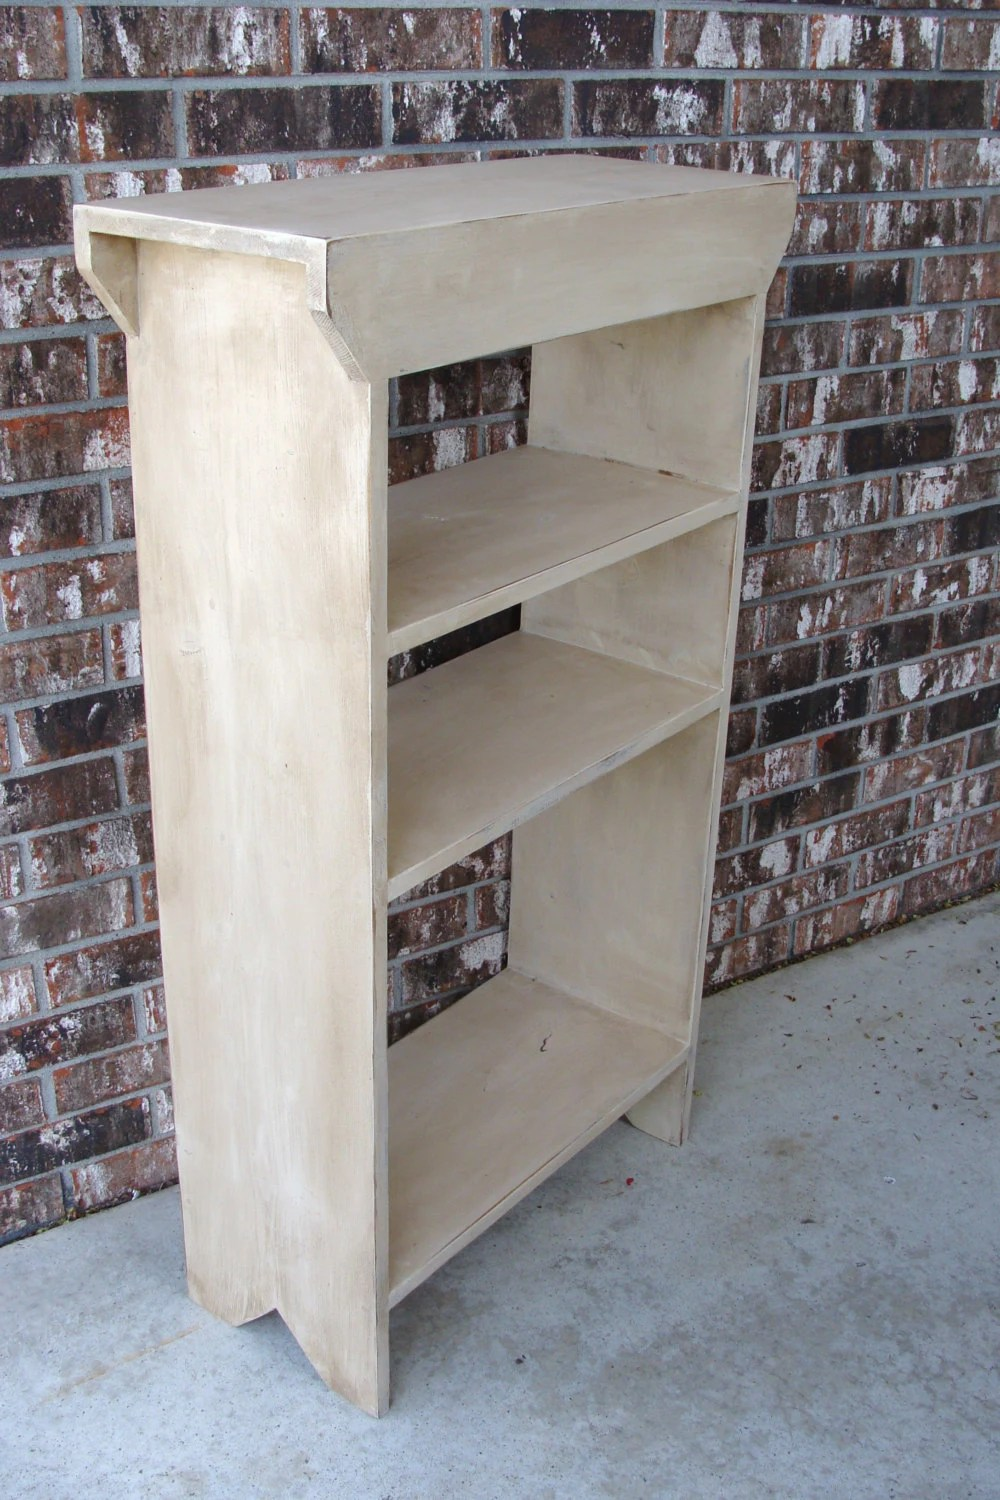 Rustic Bookshelves Rustic Bookcase Rustic Book Shelf Storage Organizer Shelf Rustic Open Shelving Modern Farmhouse Custom